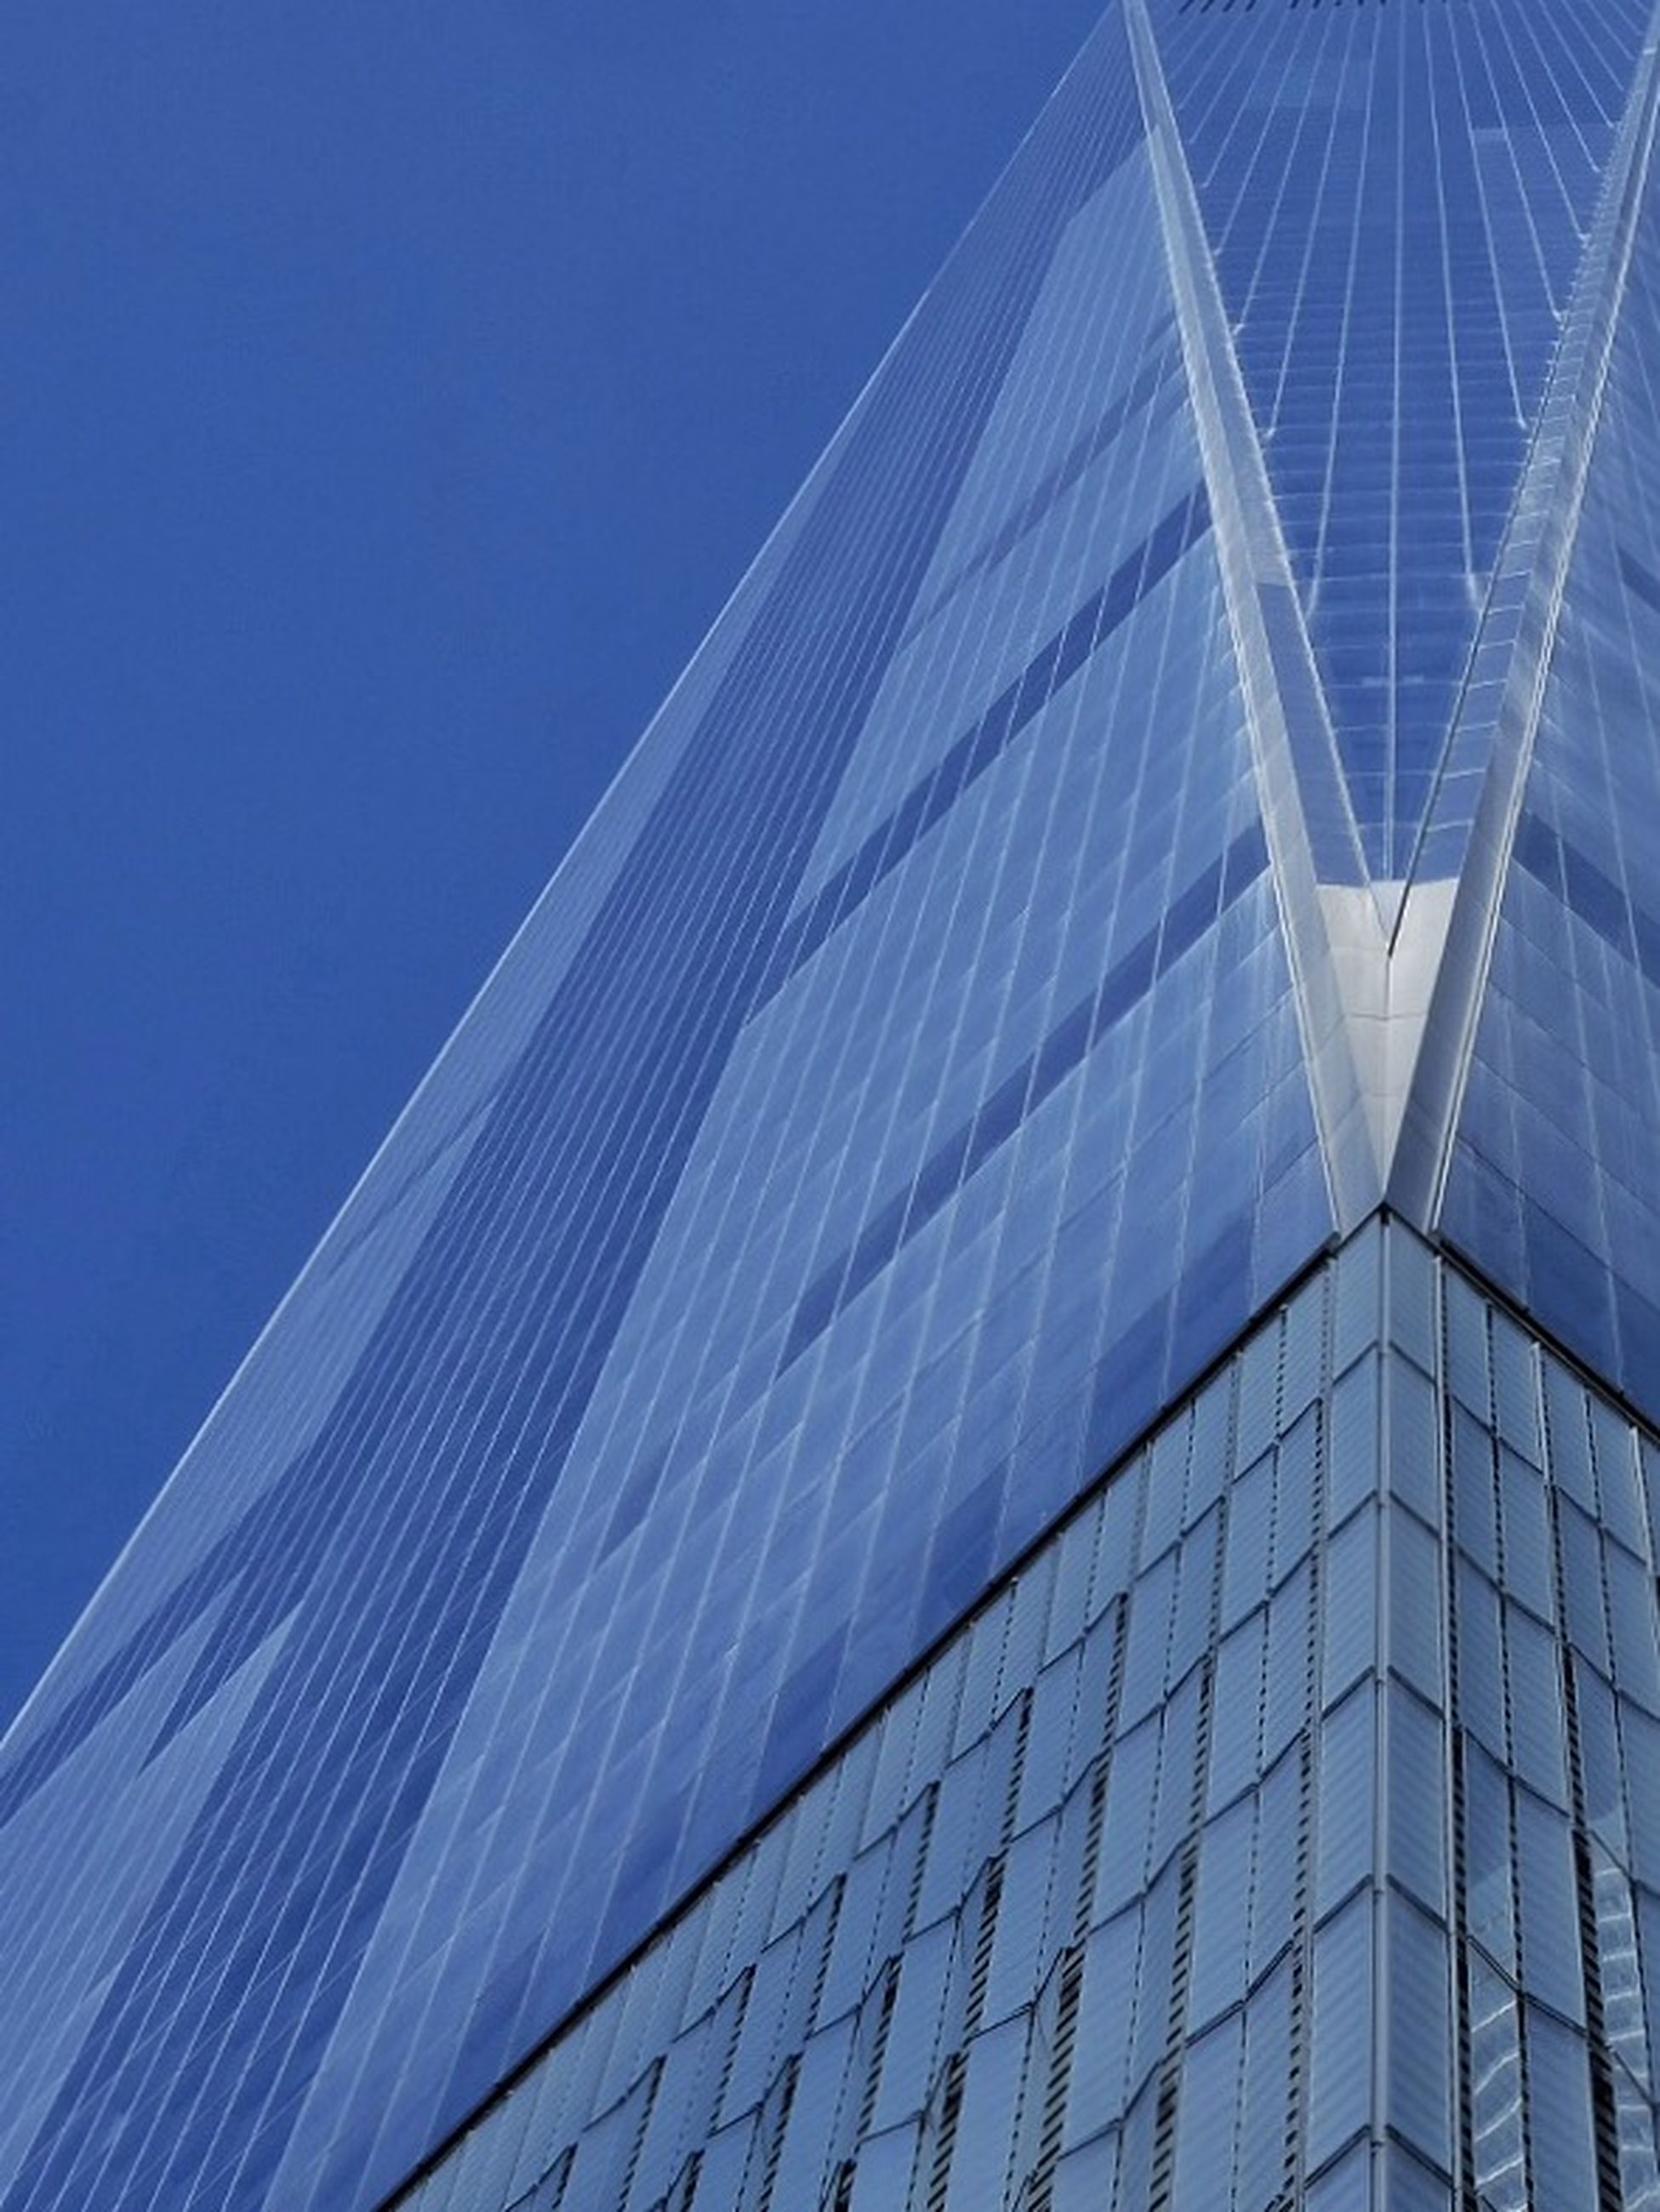 architecture, low angle view, built structure, building exterior, modern, blue, office building, skyscraper, city, clear sky, glass - material, tall - high, reflection, building, tower, sky, day, outdoors, pattern, no people